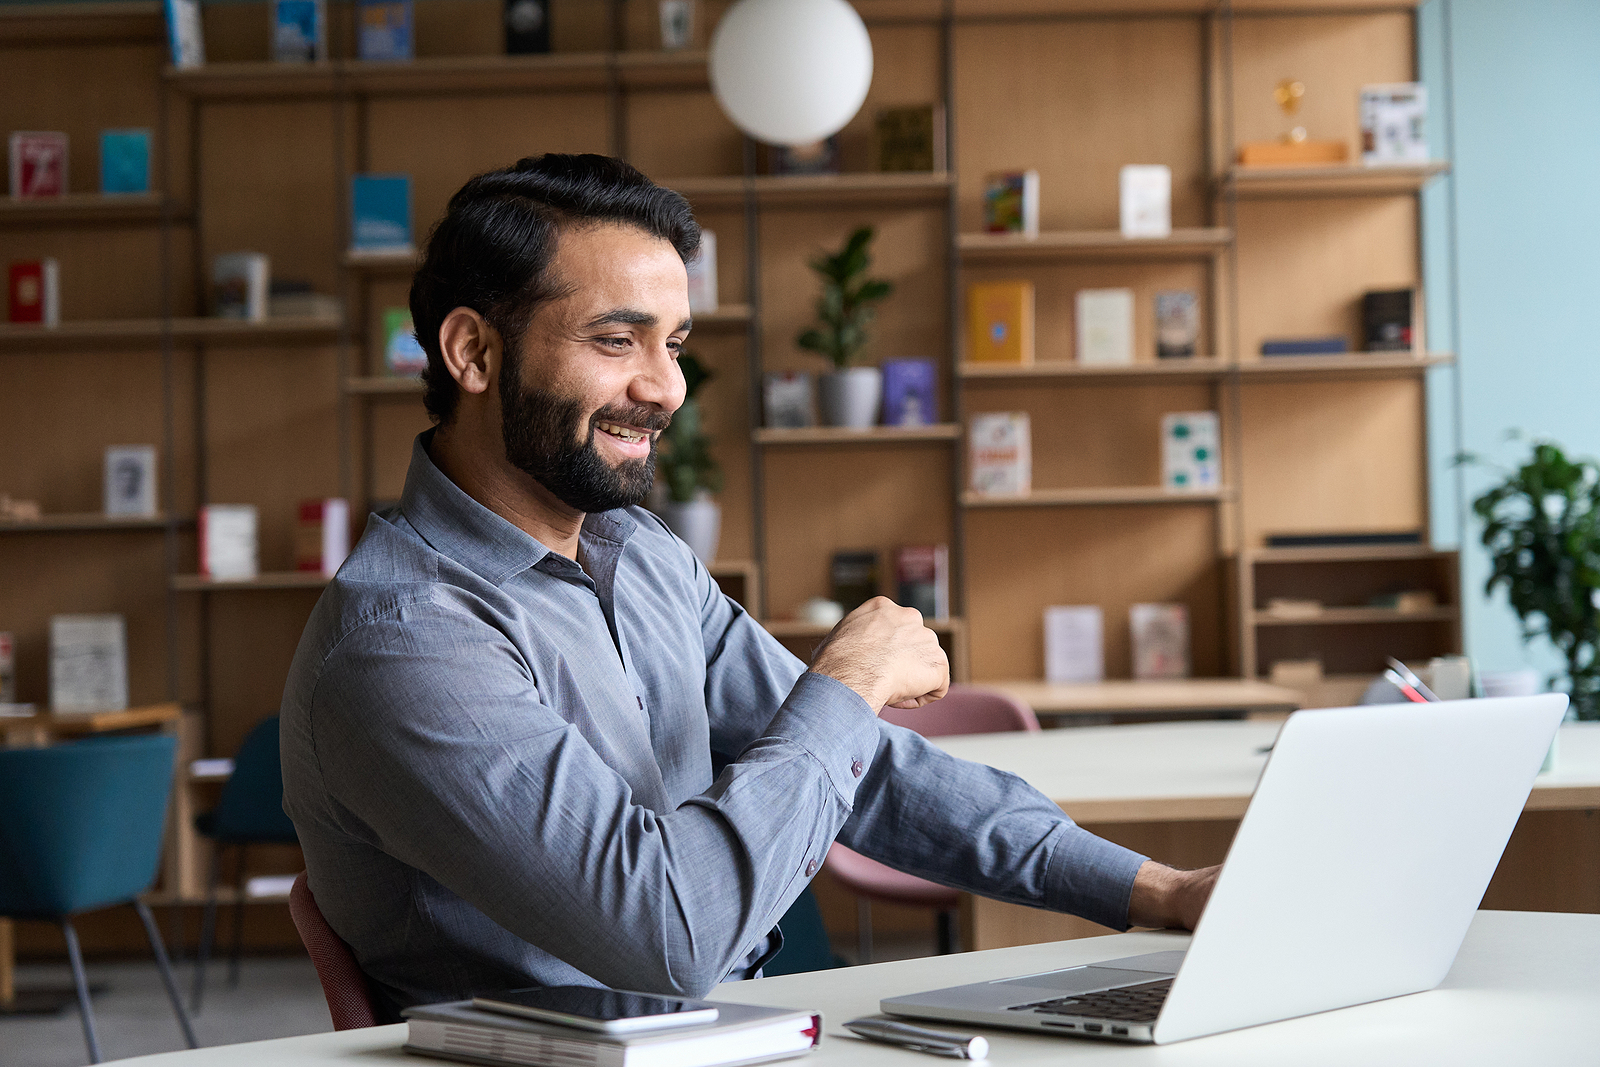 How to Maintain Employee Satisfaction With Remote Work